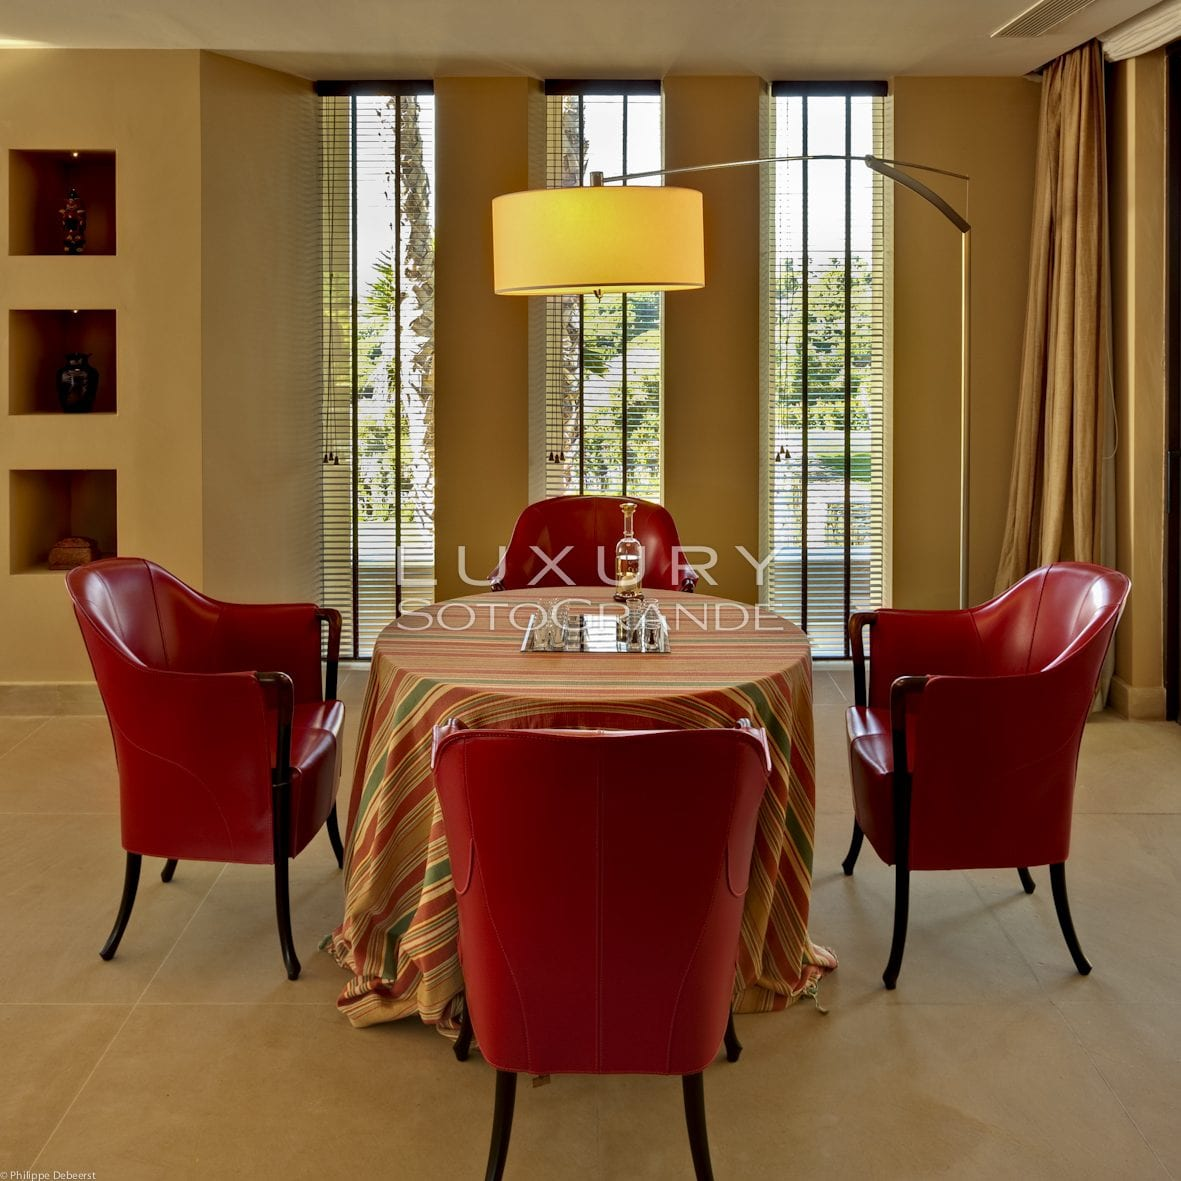 Card table in living room - Luxury Sotogrande - Estate ...